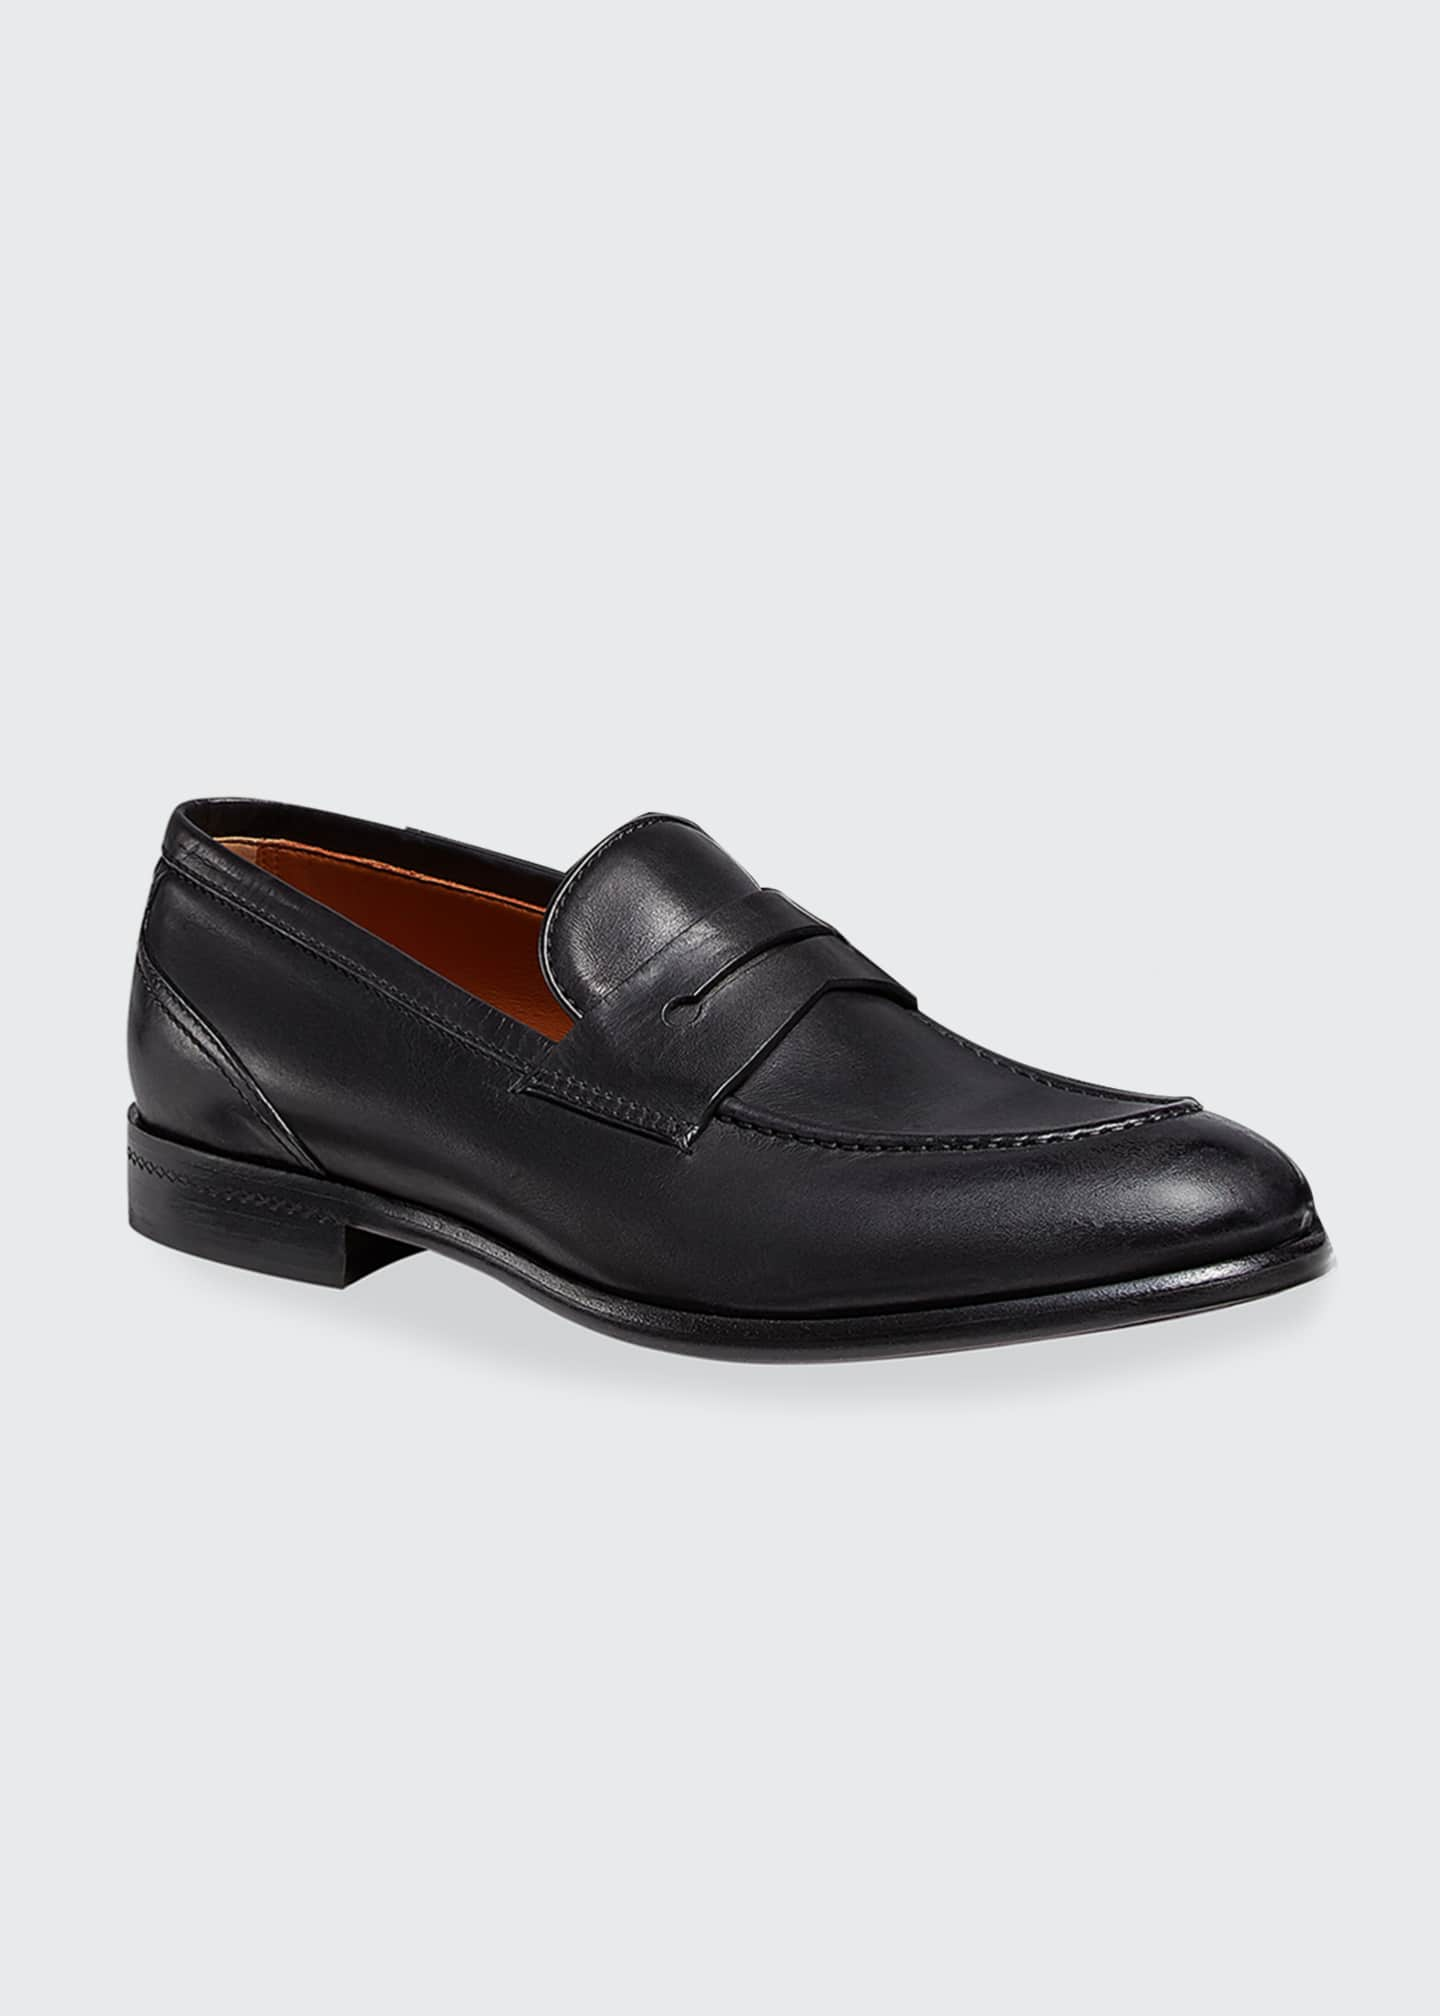 Image 2 of 3: Men's Marcello Leather Penny Loafers